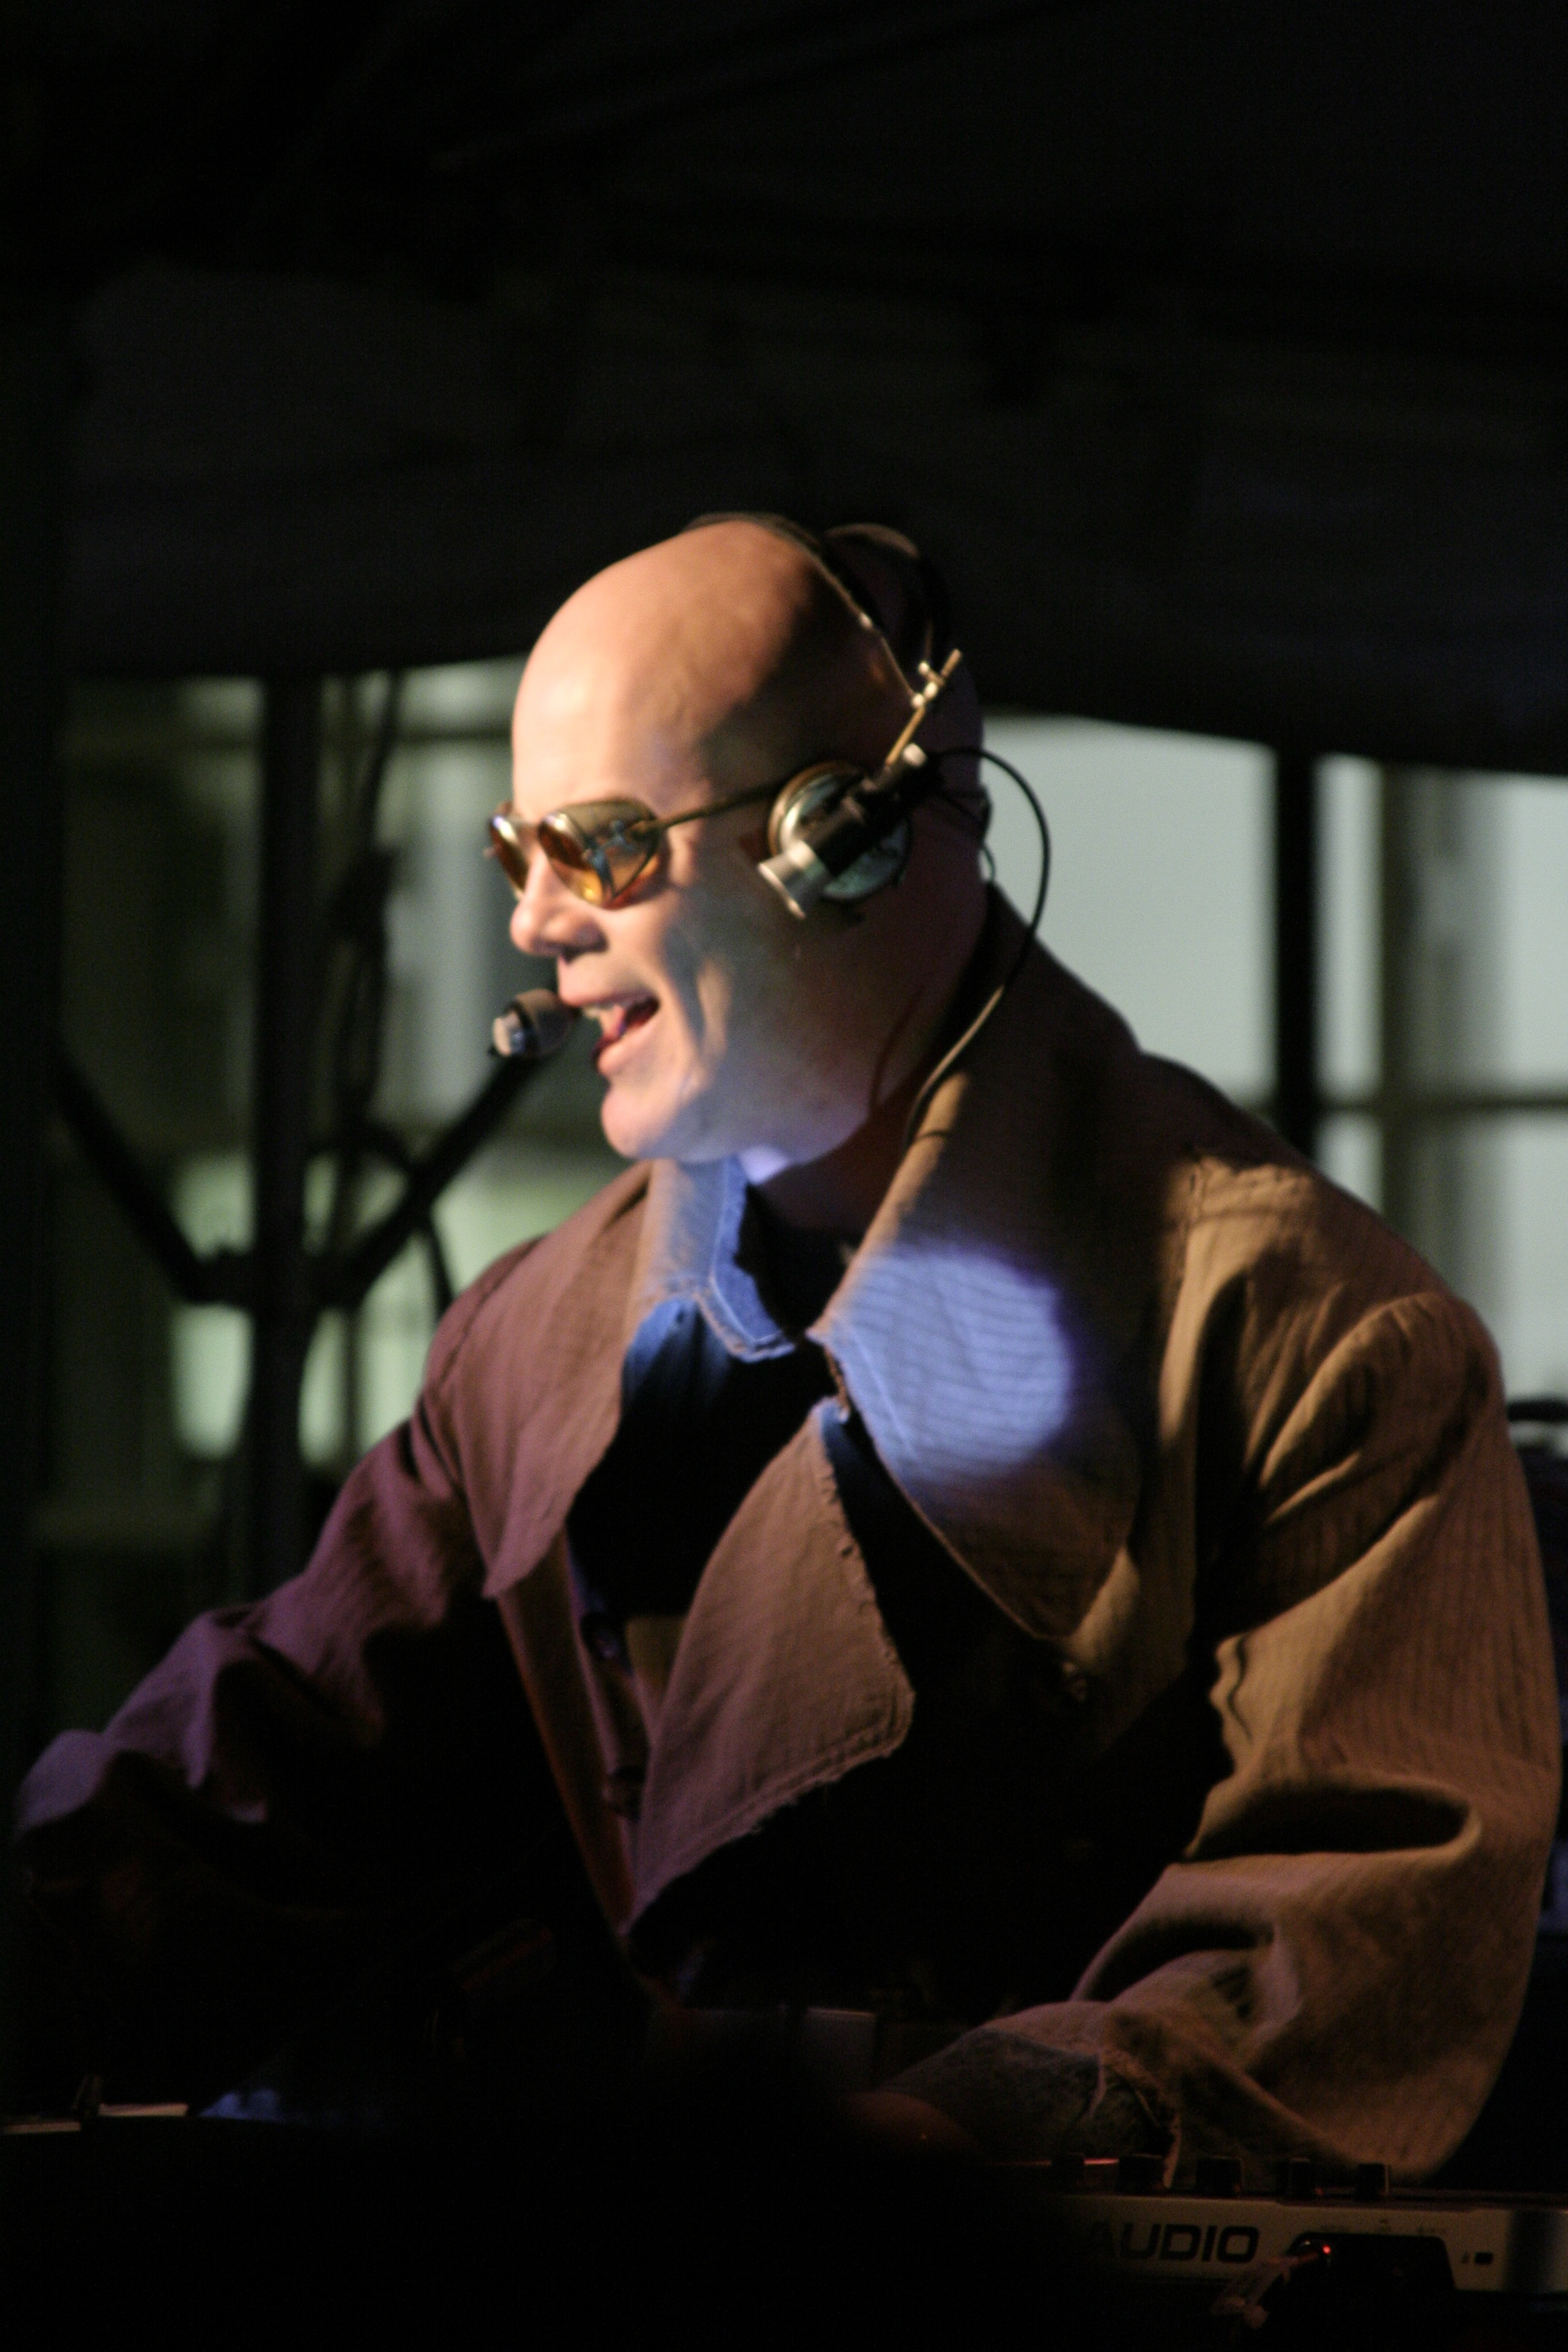 Thomas Dolby's quote #4